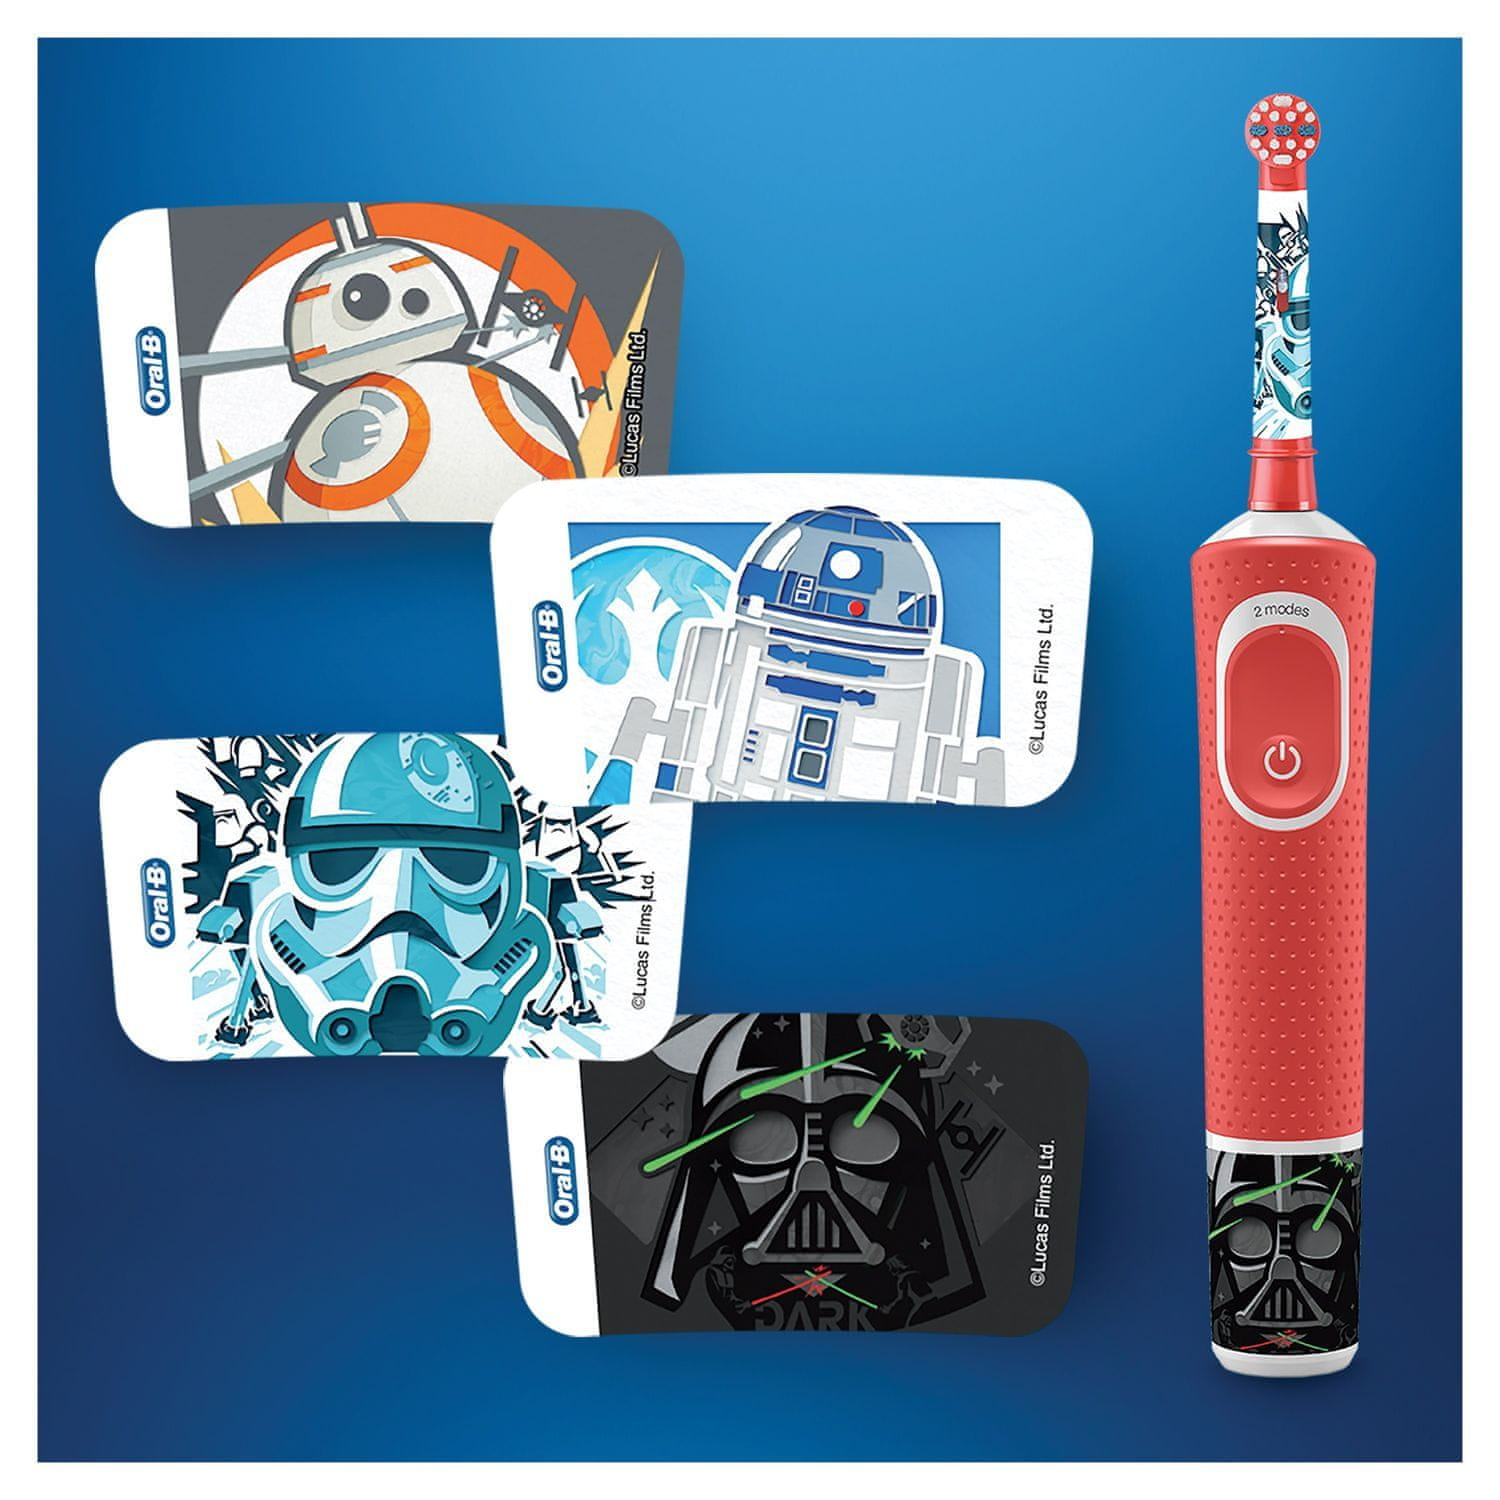 Oral-B Vitality White cross action + Vitality Star Wars časovač